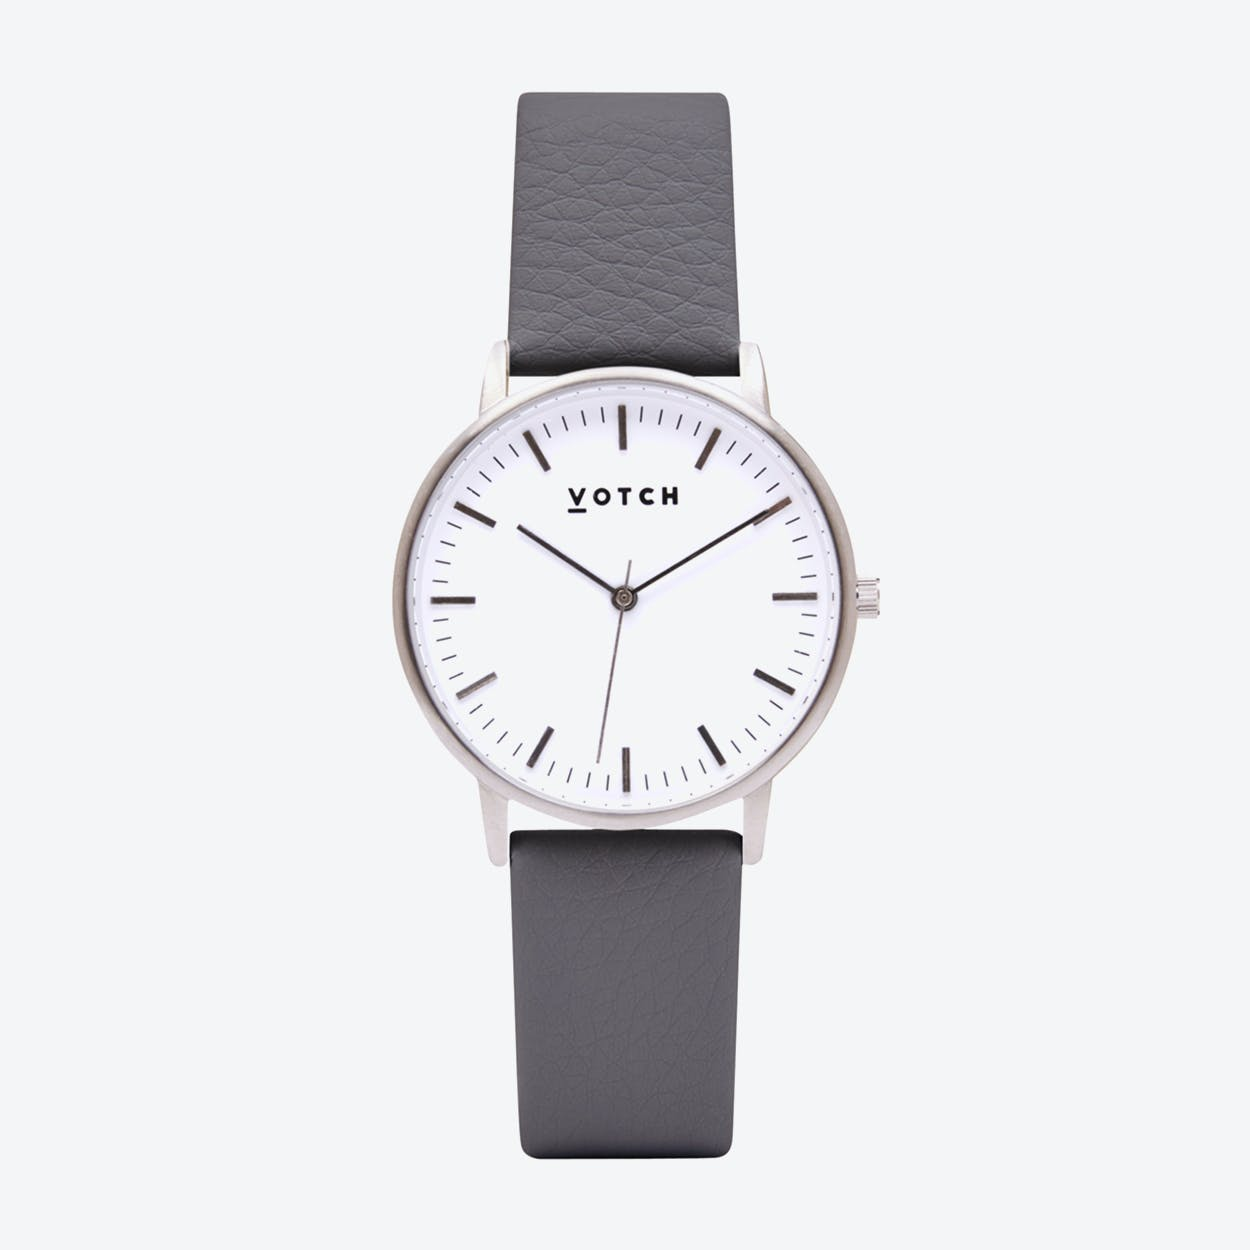 Intense Classic Watch in Silver with White Face and Slate Grey Vegan Leather Strap, 36mm